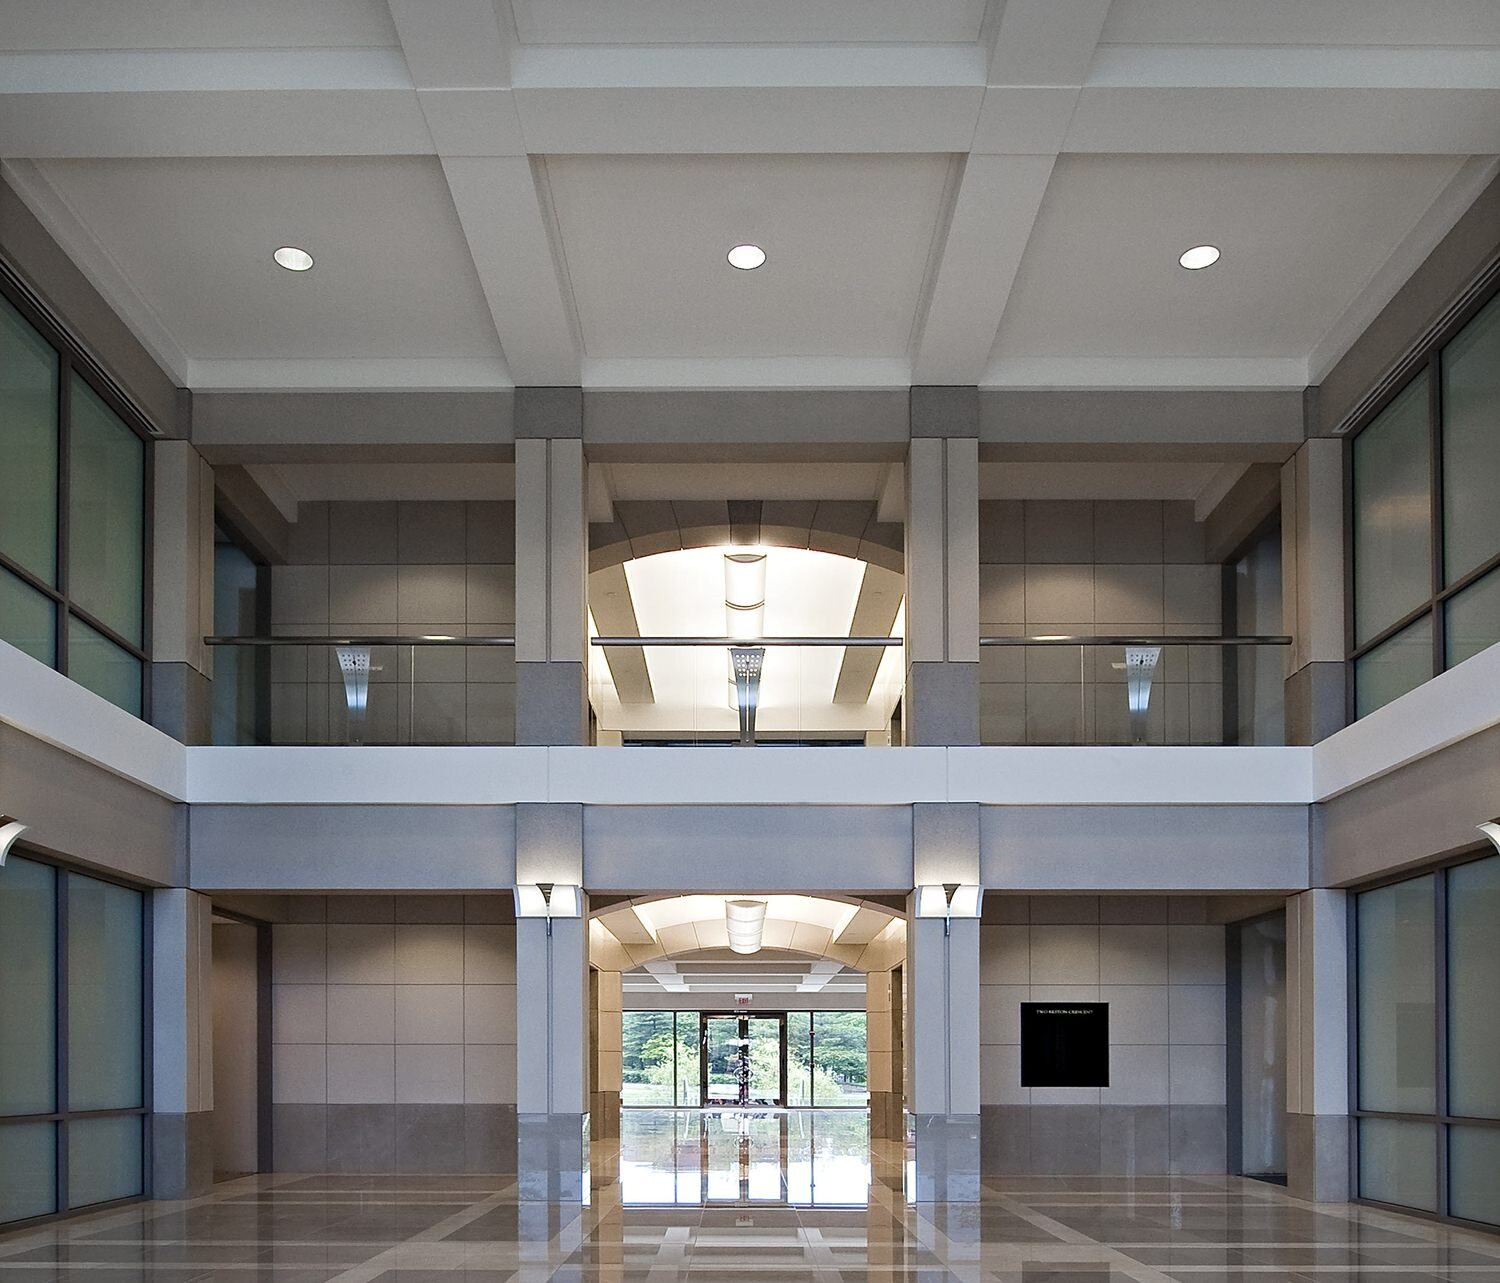 A view entering a building that has polished tile floors in it and a second floor looking over the entryway.